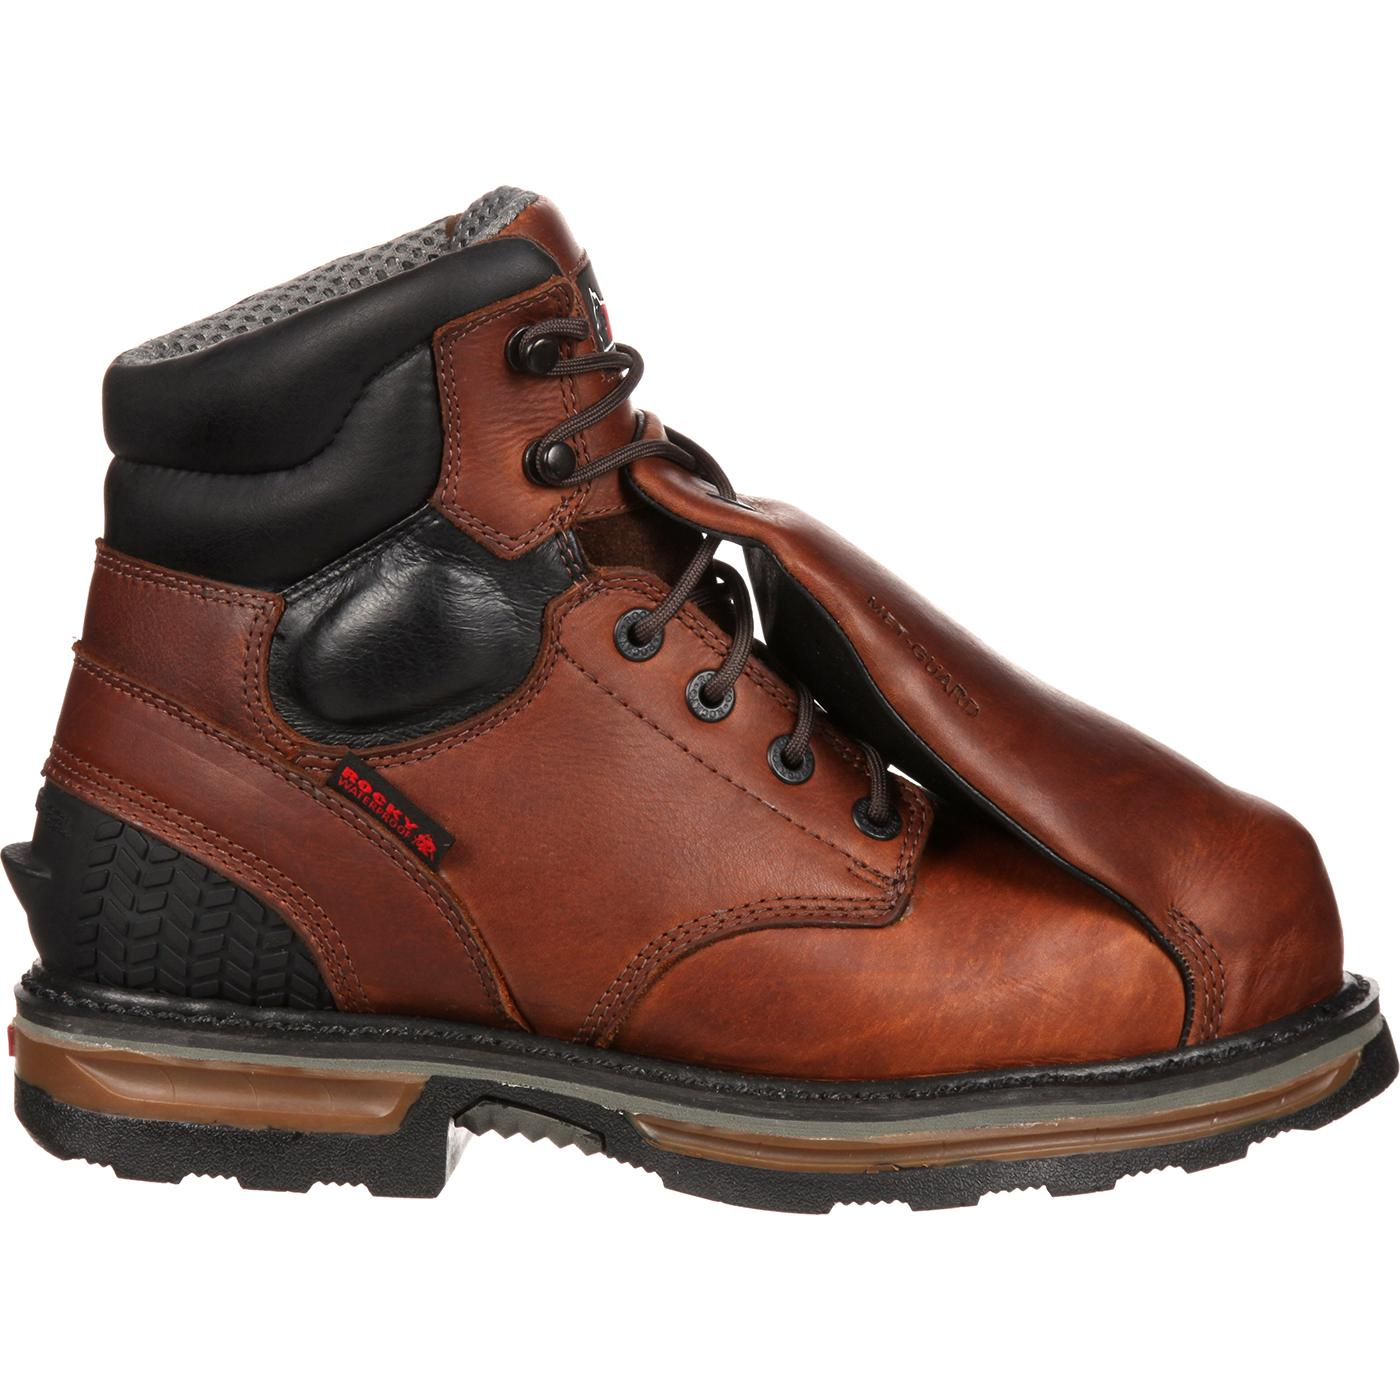 341f13c981f Rocky Elements Steel Waterproof Steel Toe Met-Guard Work Boot